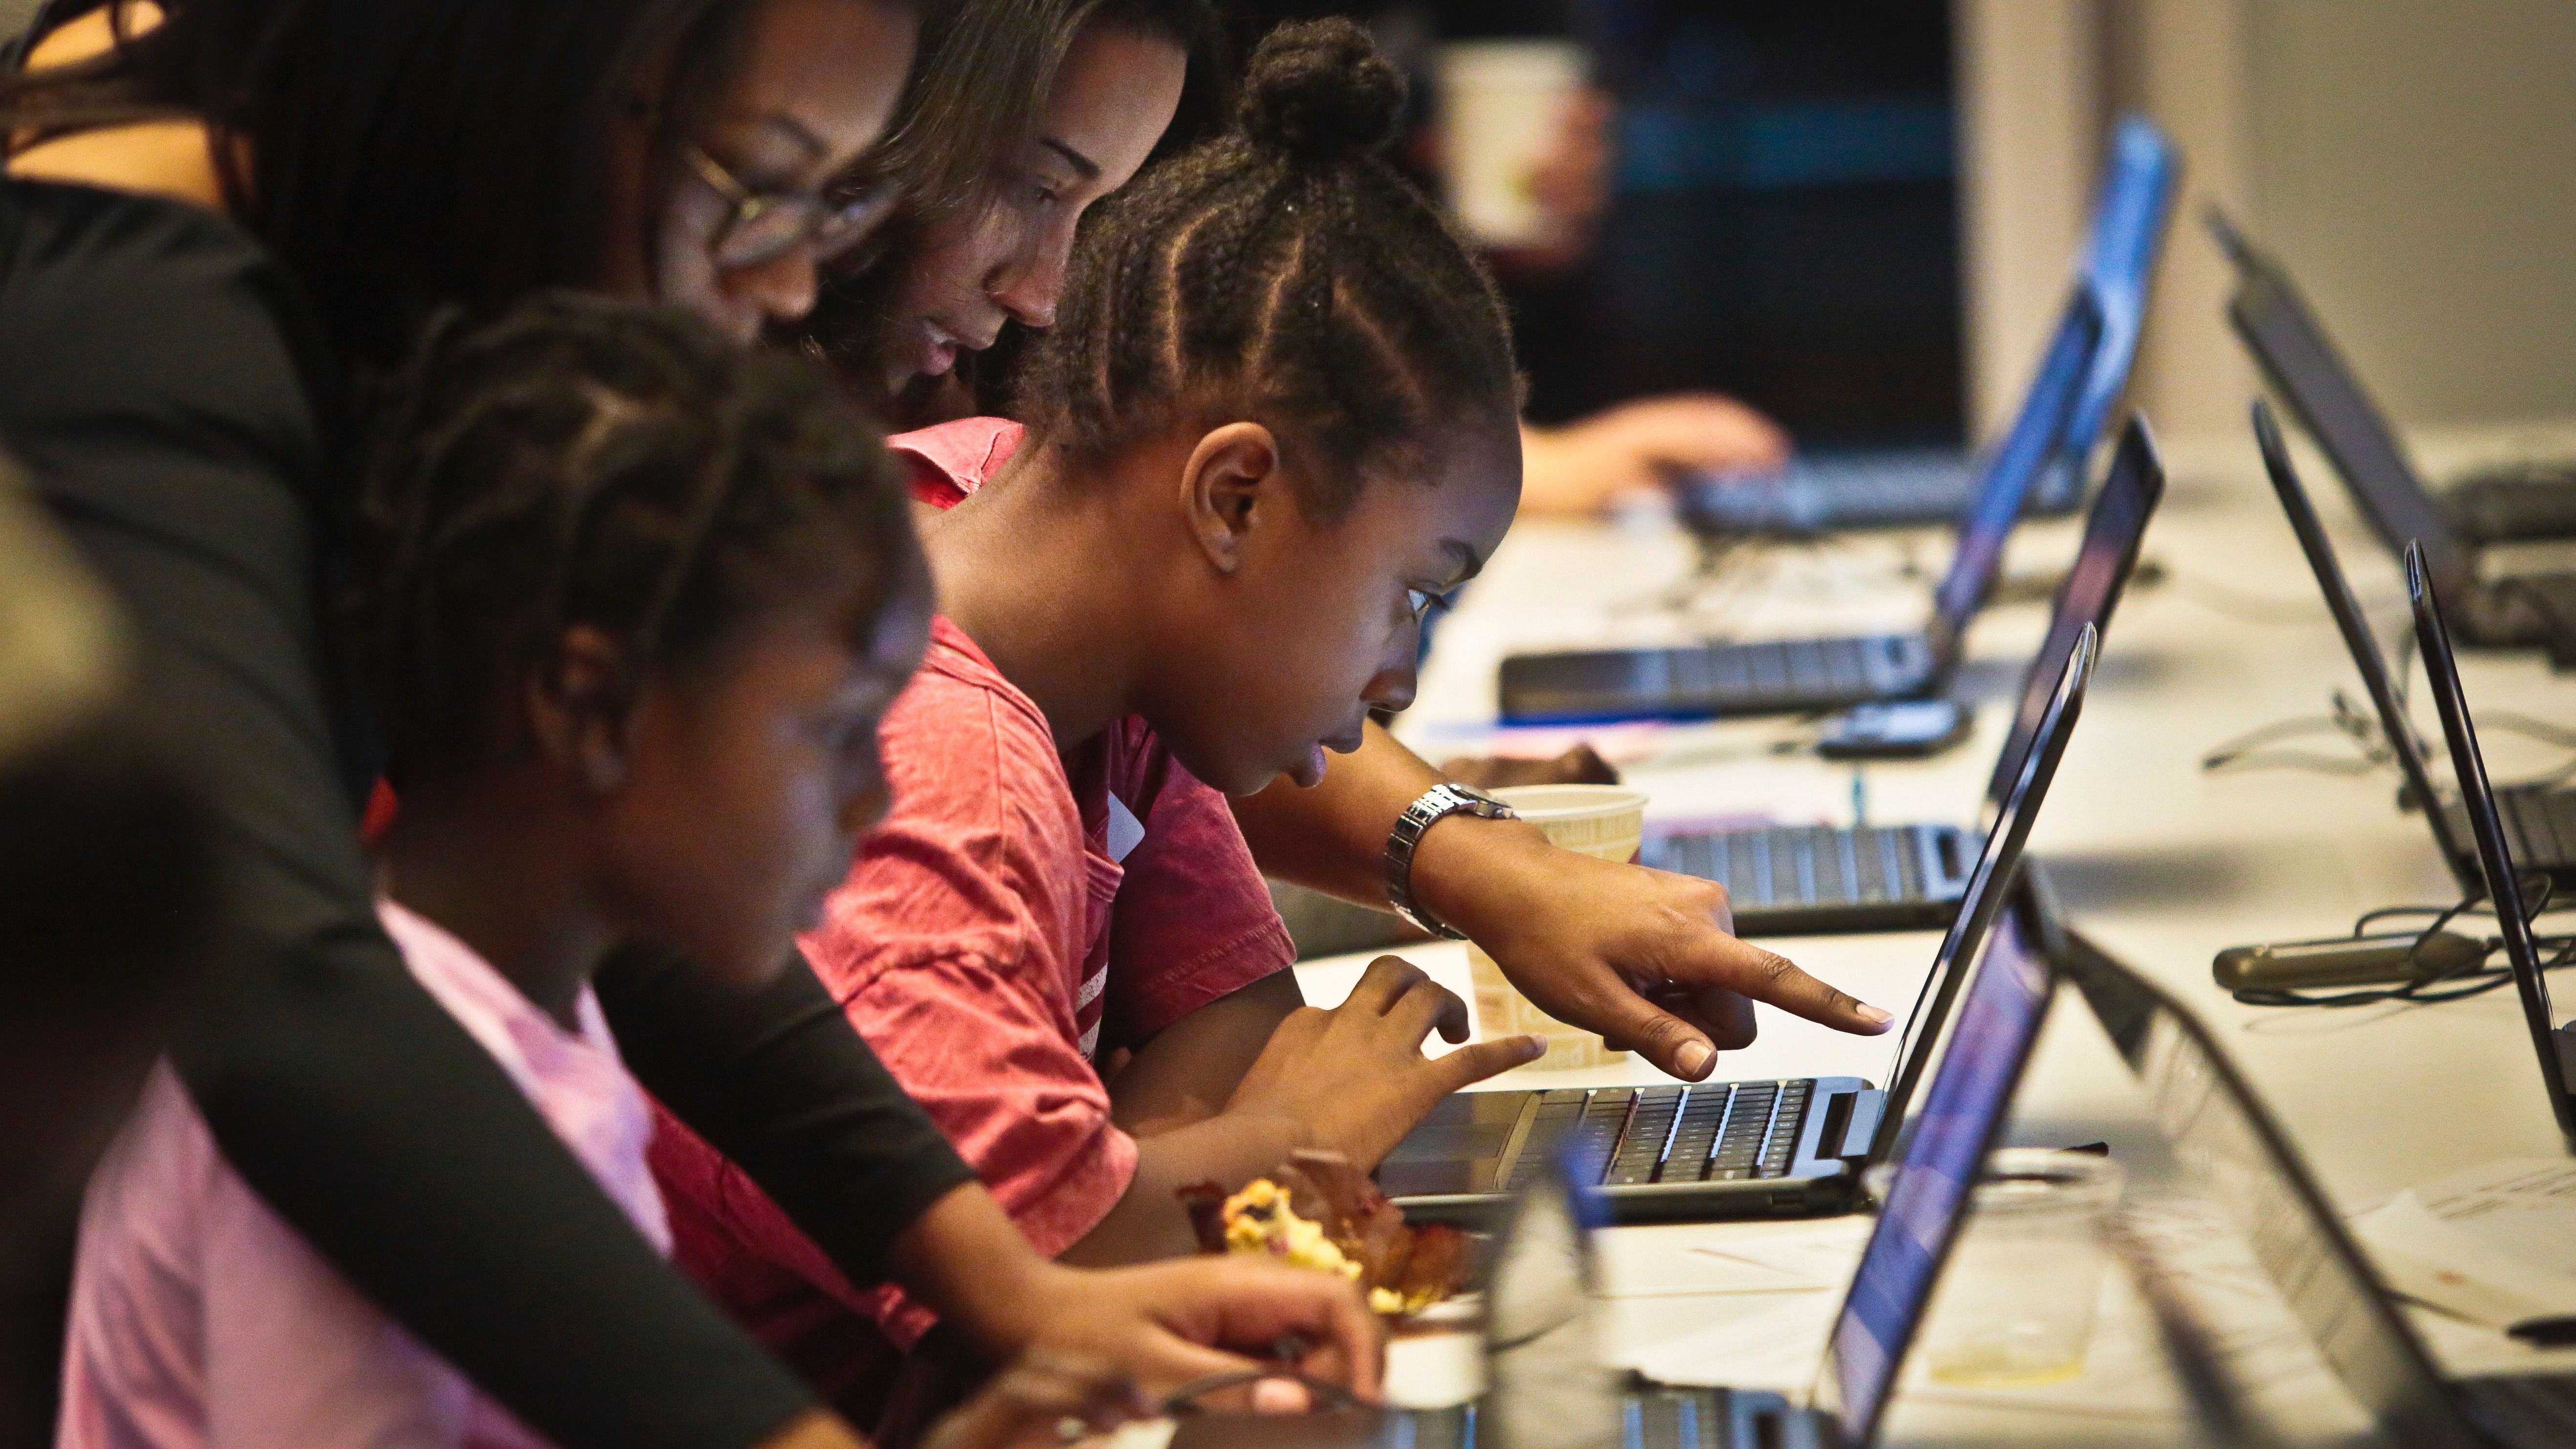 Black Girls Code (BGC) workshop volunteers Ashley Tolbert, second from left, and Nagita Sykes, second from right, guide sisters Jessica Ostrun, 11, far right, and Jayda Ostrun, 7, during an app building session at Google, on Saturday, Dec. 14, 2013 in New York.  BGC introduces basic programming to girls from a segment of the population now poorly represented in the high technology workforce. (AP Photo/Bebeto Matthews)